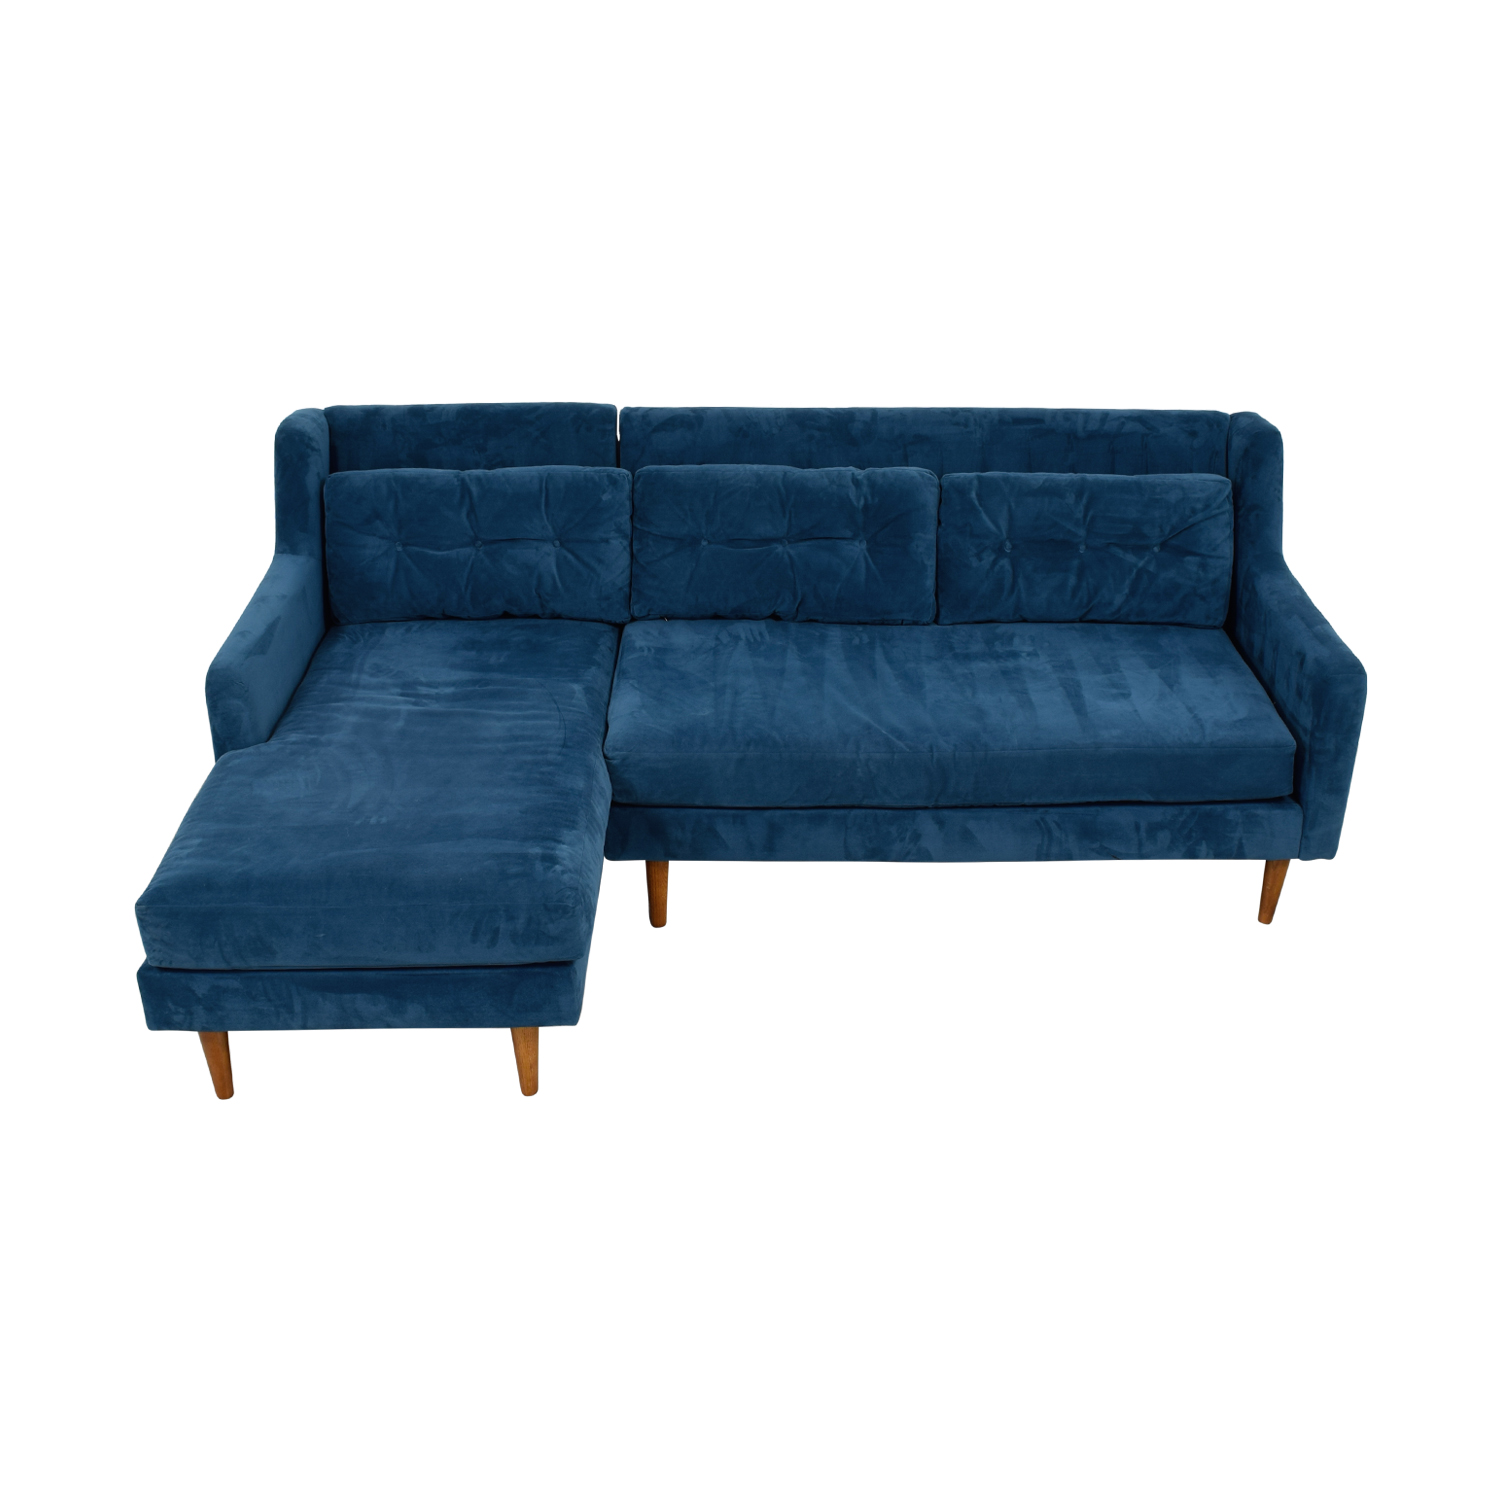 West Elm Crosby Lagoon Blue Tufted Chaise Sectional